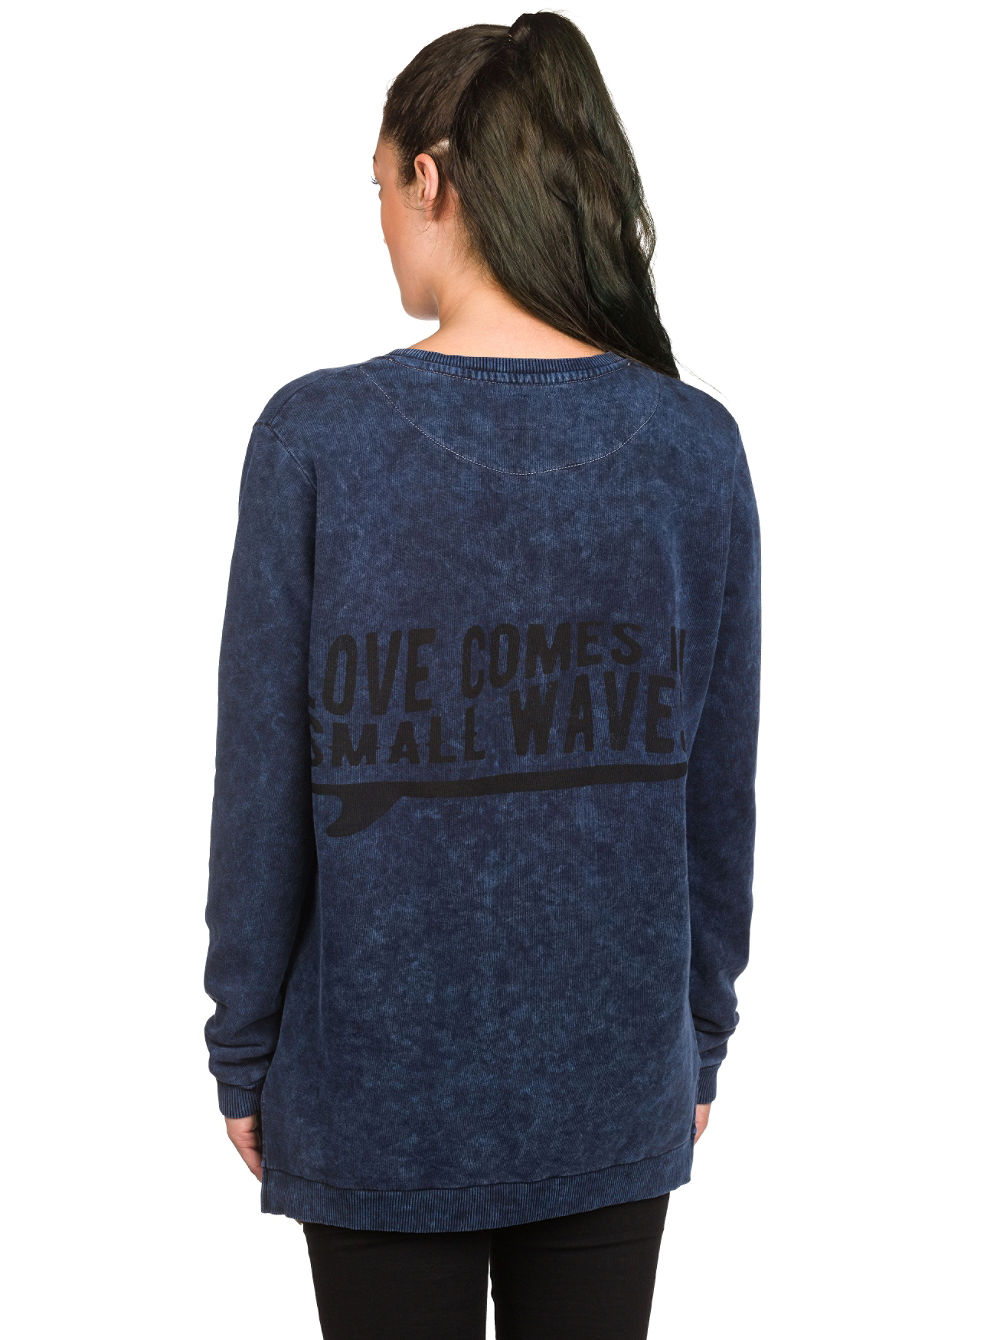 BT Love Comes Sweater